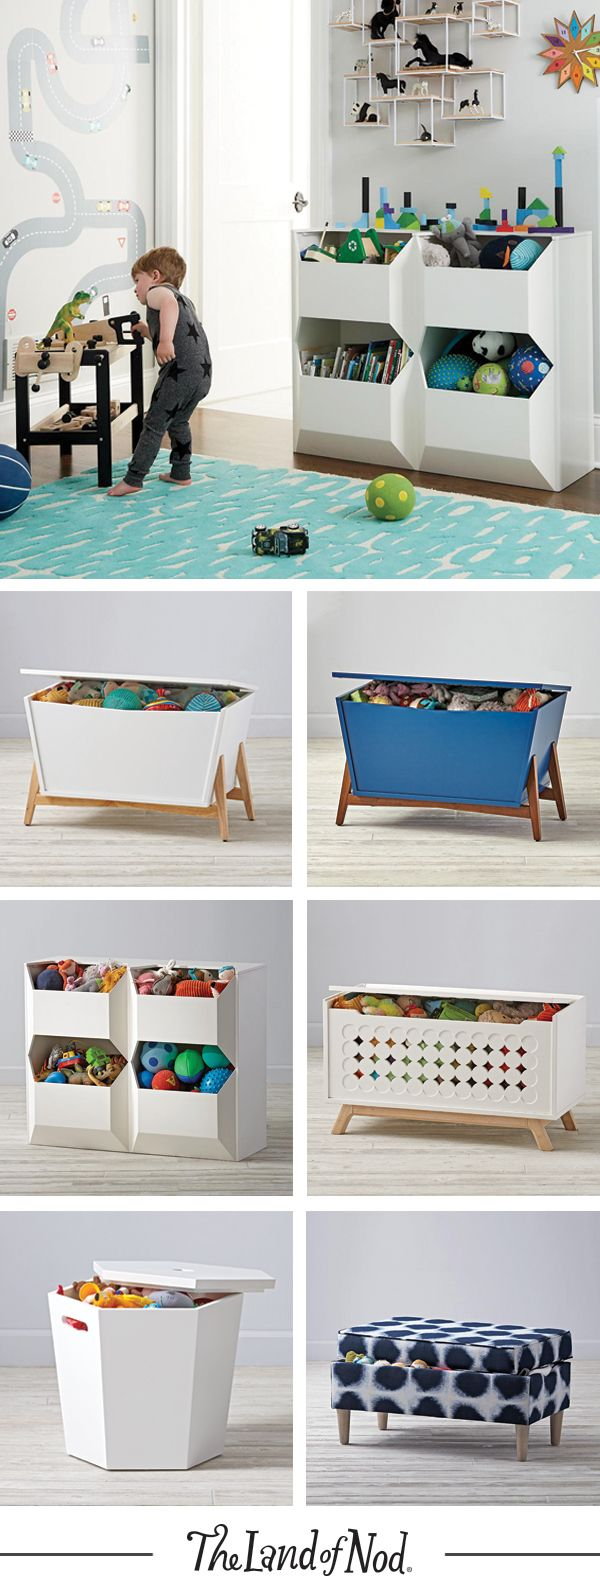 Kids Storage Bench Furniture Toy Box Bedroom Playroom: 230 Best Images About Family-Play Room Combo Ideas On